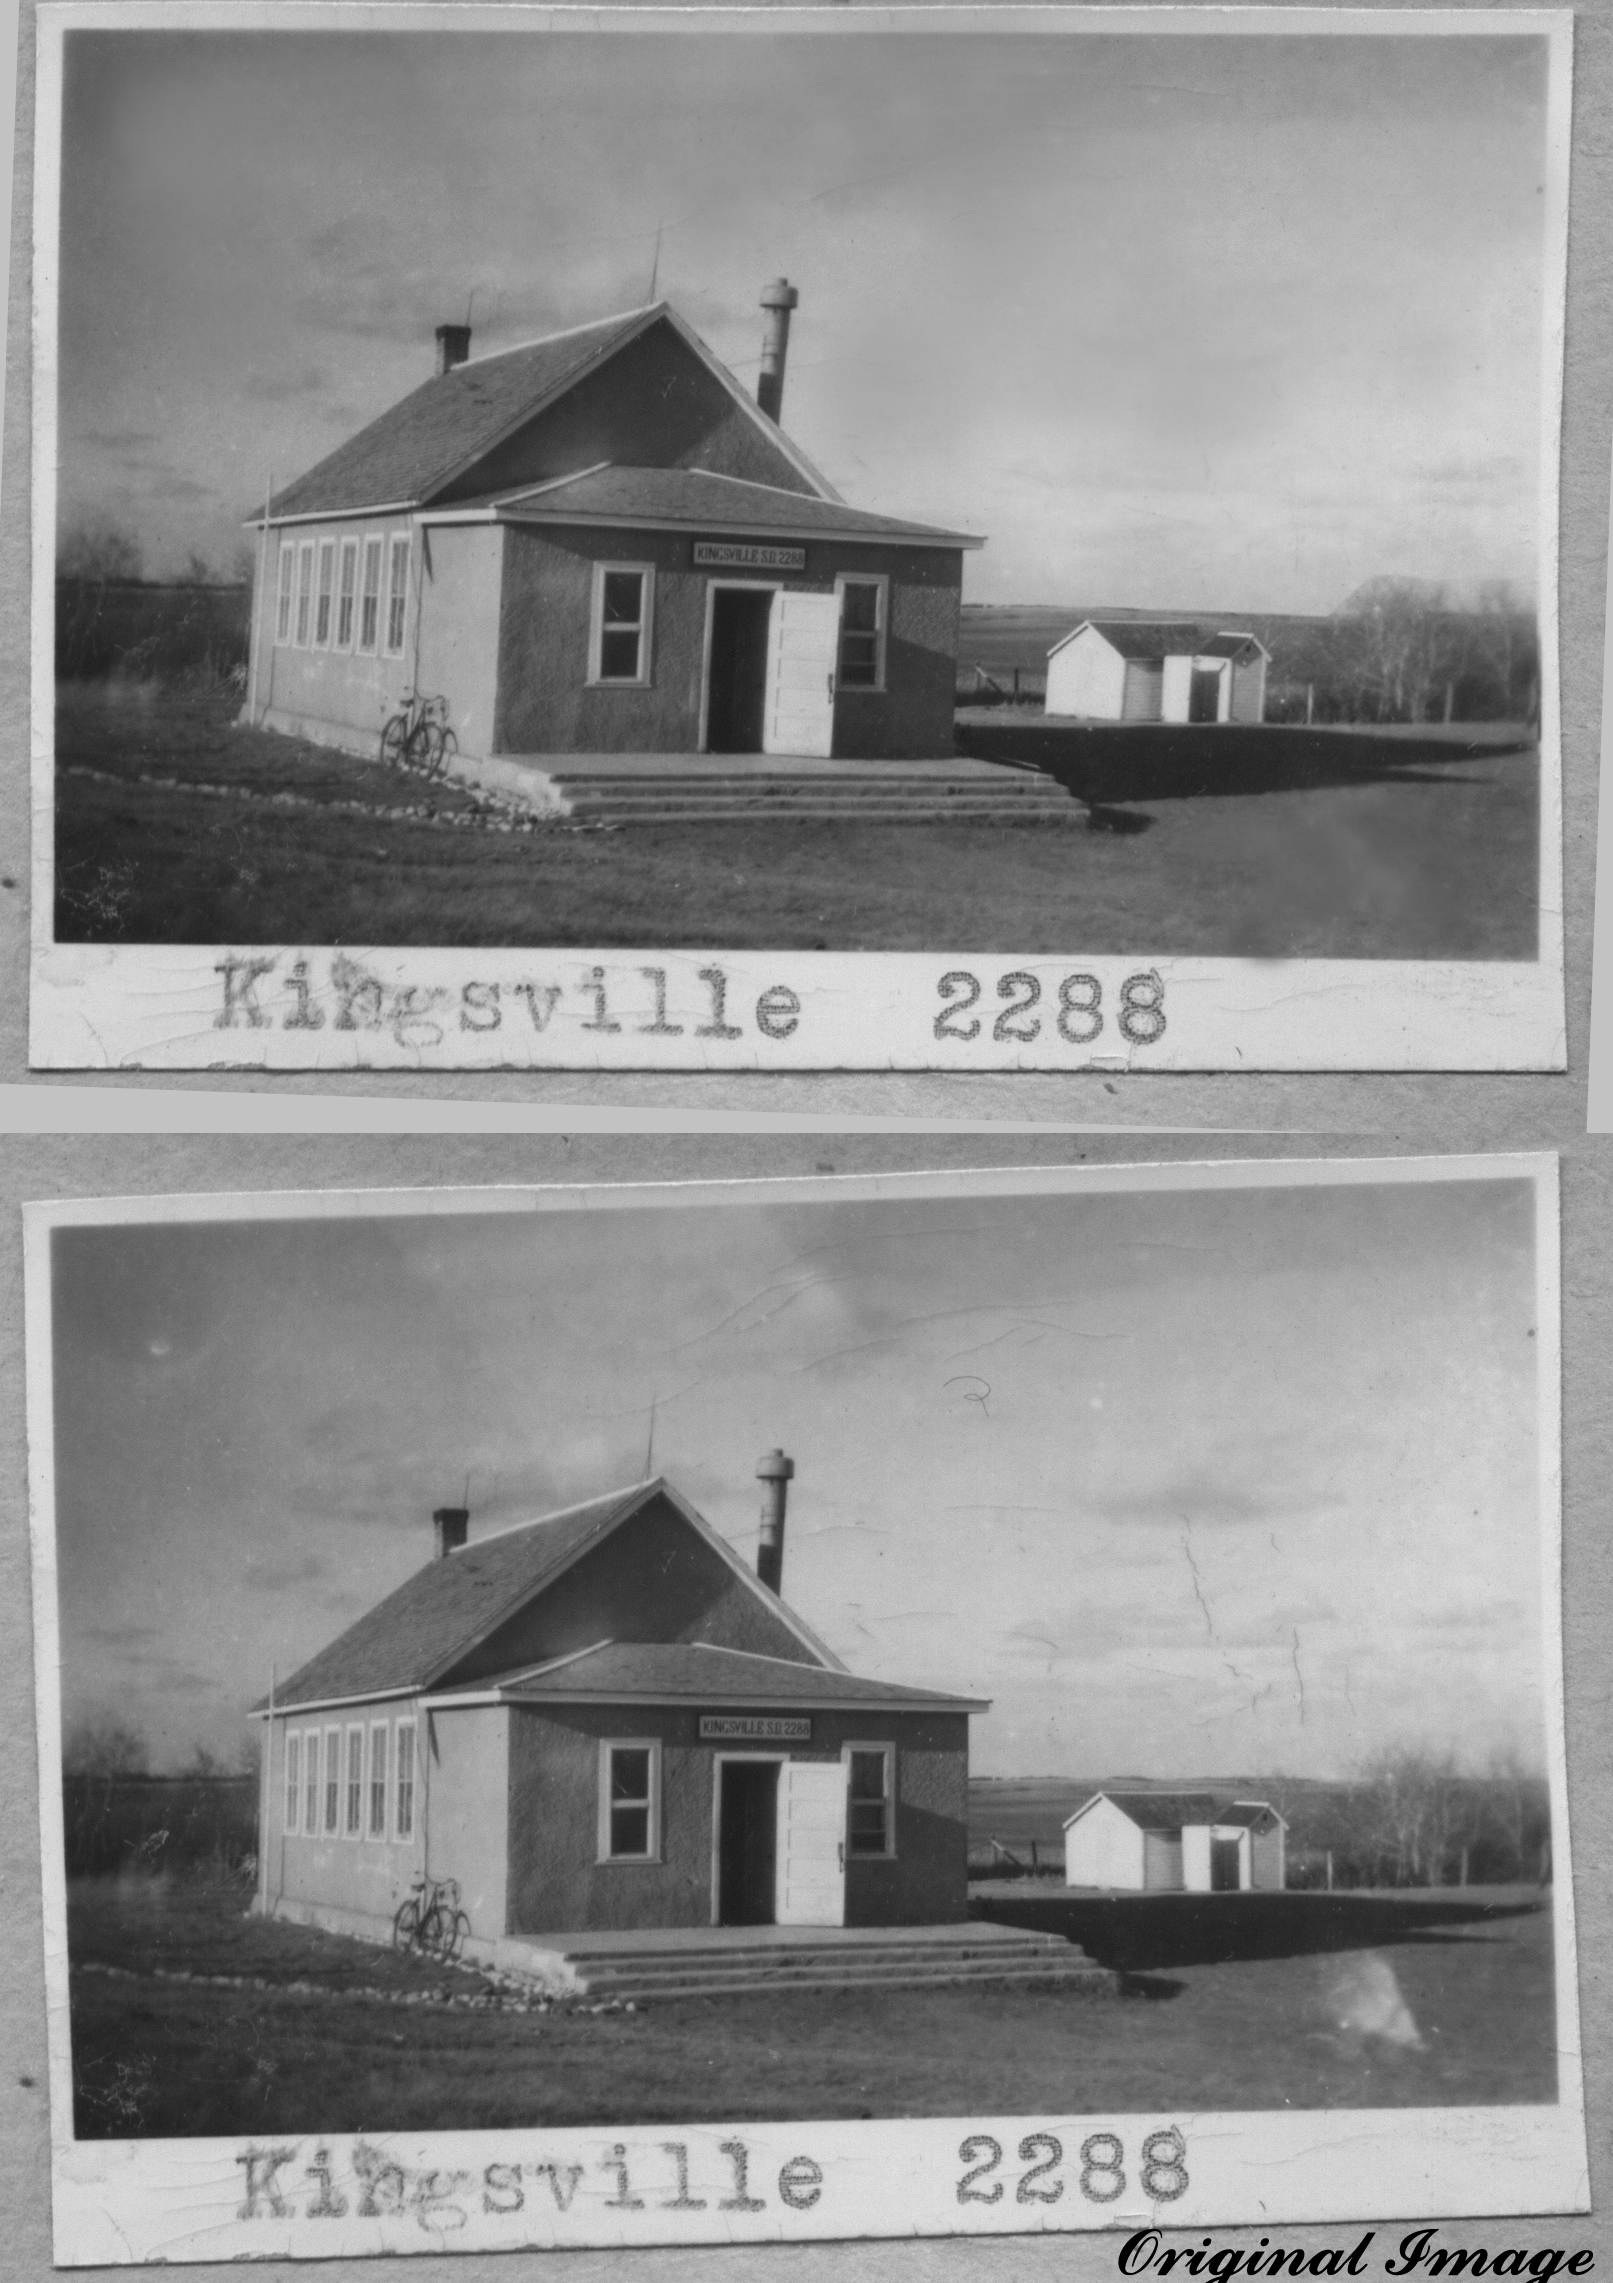 Kingsville school district 2288, 1909-1952, southwest section 18 township 22 range 18 west of the second meridian, near Southey South east section 7 township 23 range 18 west of the 2 meridian, provincial highway 6,    - Saskatchewan Gen Web